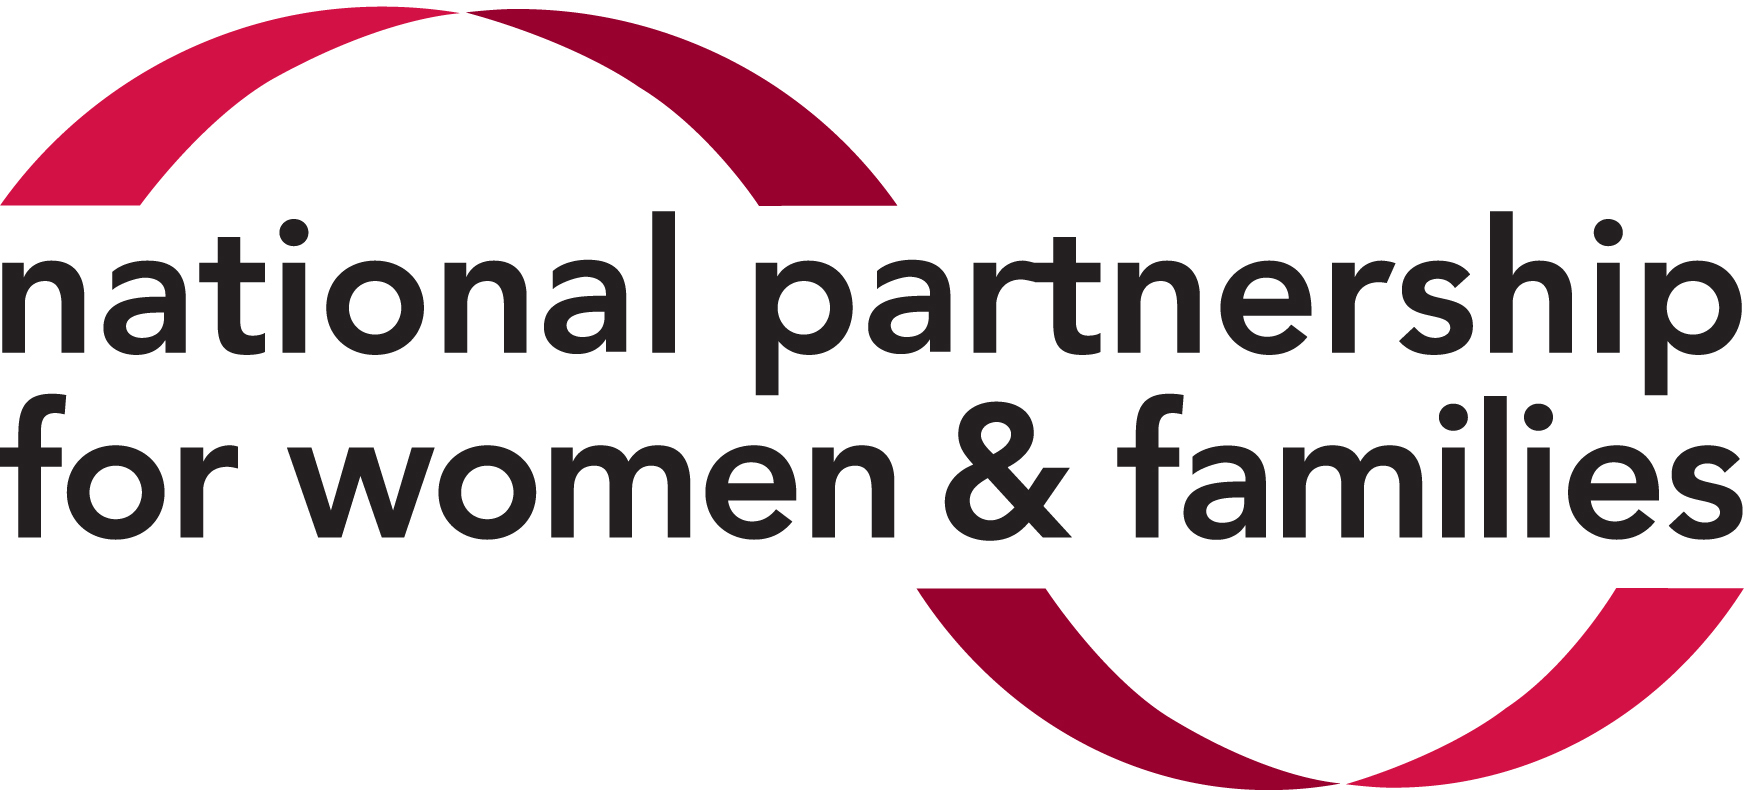 National Partnership for Women & Families Logo